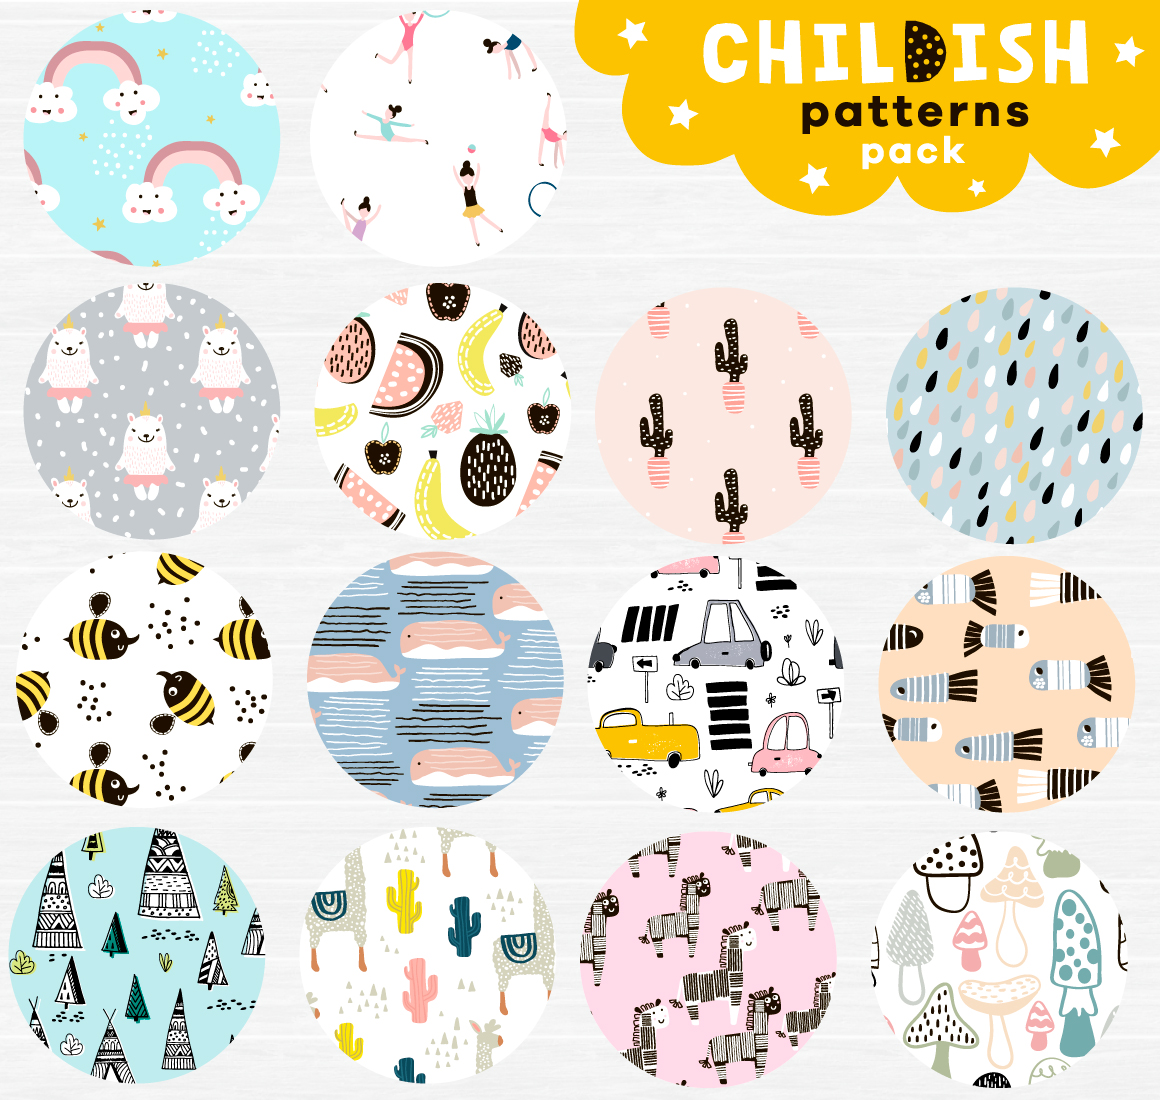 Childish patterns pack vol. 2 example image 3